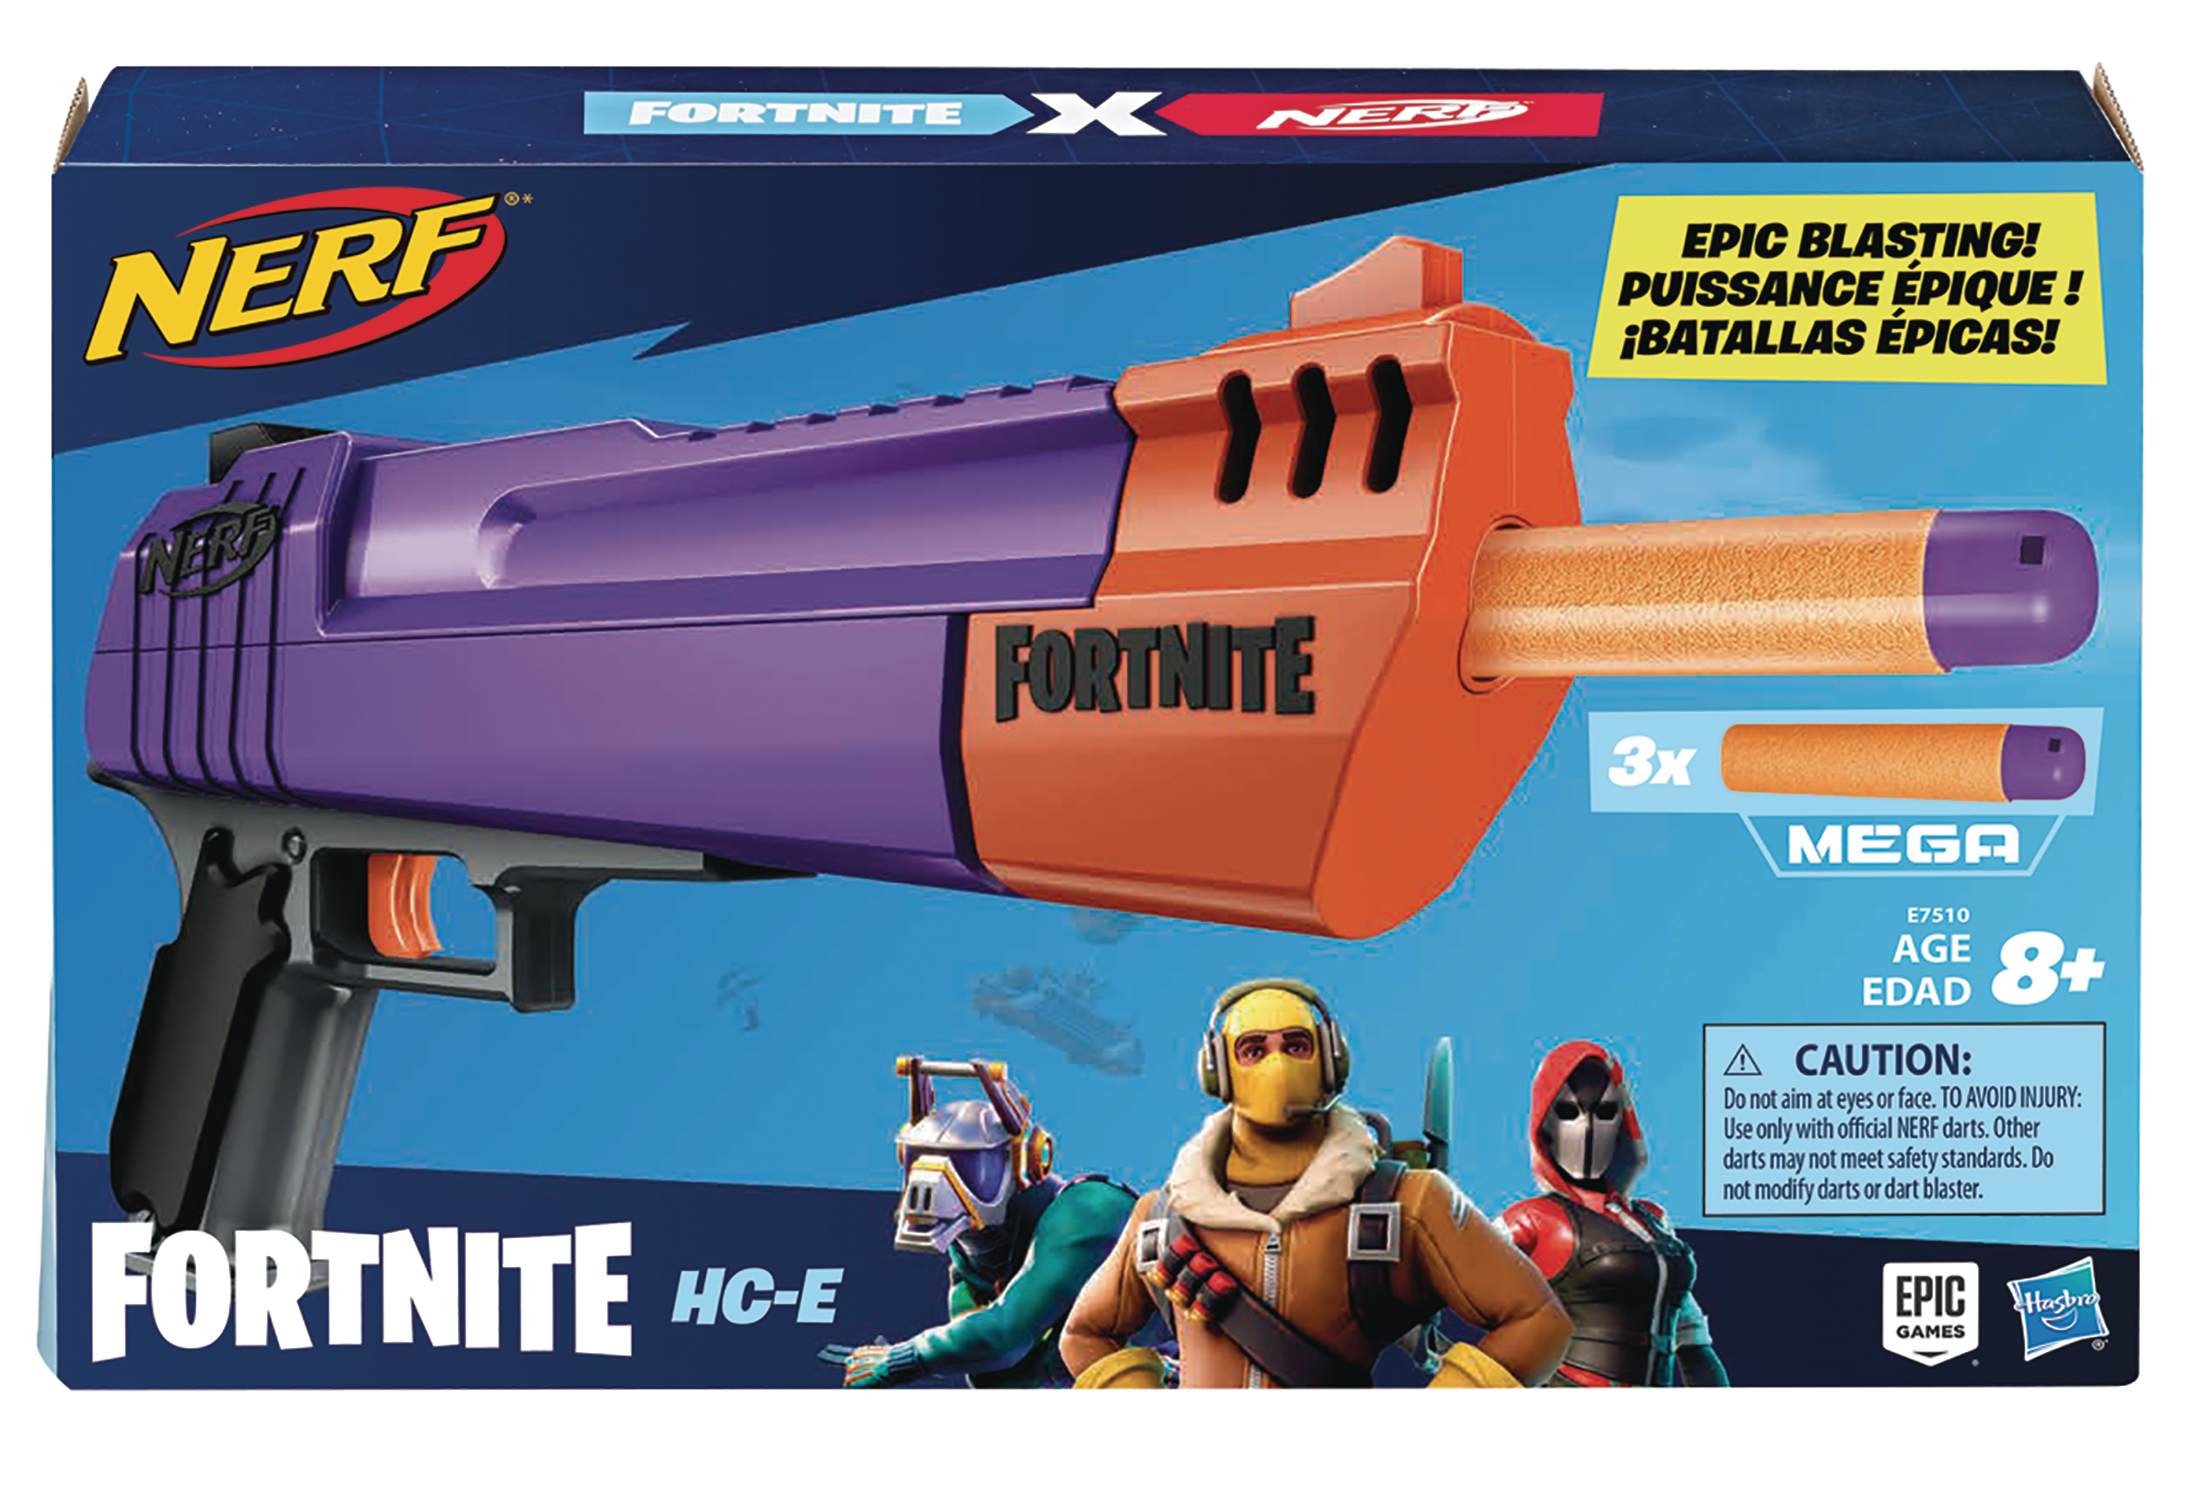 NERF FORTNITE HC-E BLASTER CS